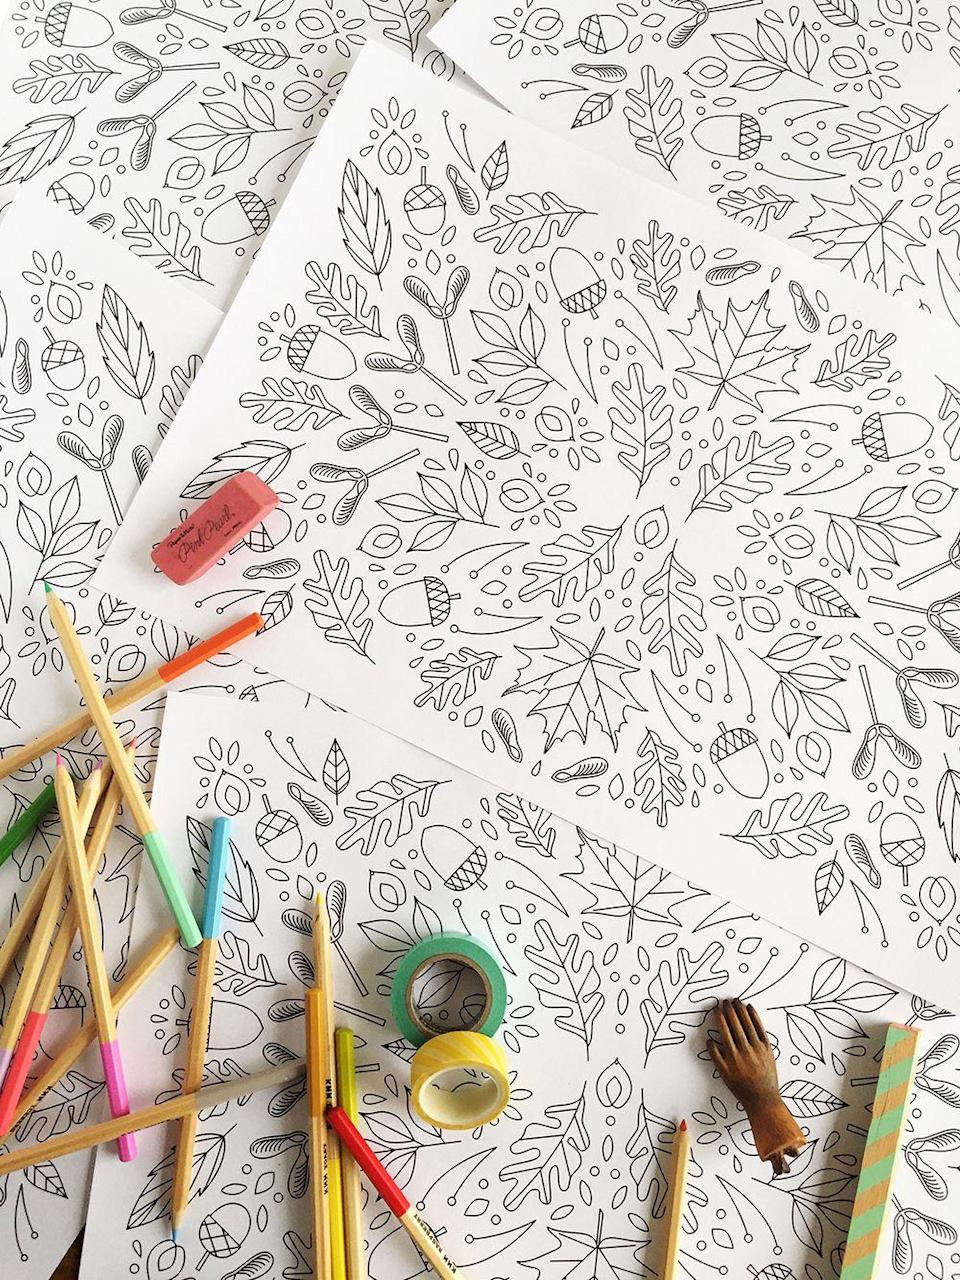 """<p>Get this printable placemat at The House That Lars Built, and everyone can decorate the table before the meal begins. </p><p><em><a href=""""https://thehousethatlarsbuilt.com/2016/11/printable-coloring-thanksgiving-placemats.html/#more-24433"""" rel=""""nofollow noopener"""" target=""""_blank"""" data-ylk=""""slk:Get the printable placemat at The House That Lars Built »"""" class=""""link rapid-noclick-resp"""">Get the printable placemat at The House That Lars Built »</a></em></p><p><strong>RELATED: </strong><a href=""""https://www.goodhousekeeping.com/holidays/thanksgiving-ideas/g1190/diy-holiday-place-cards/"""" rel=""""nofollow noopener"""" target=""""_blank"""" data-ylk=""""slk:Thanksgiving Place Cards for Your Holiday Table"""" class=""""link rapid-noclick-resp"""">Thanksgiving Place Cards for Your Holiday Table</a></p>"""